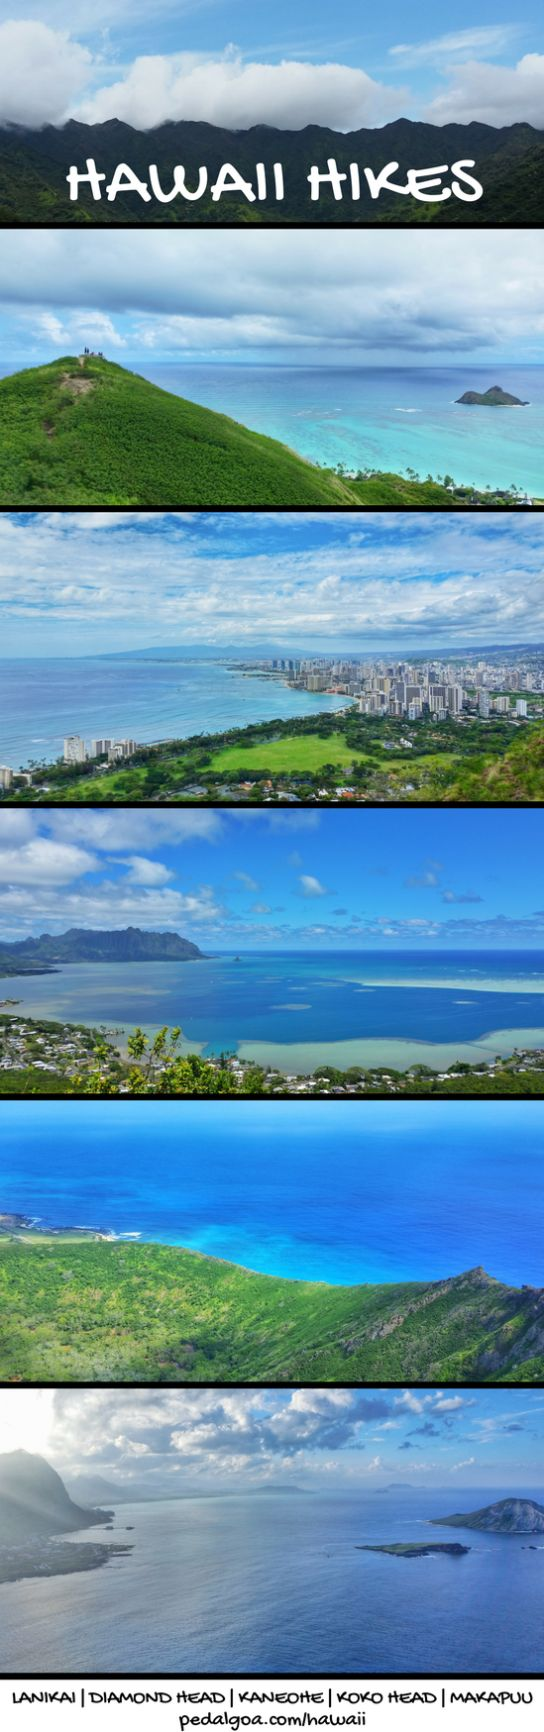 Best Oahu hikes: US hiking trails in Hawaii, tons of hikes on Oahu to choose on Hawaii vacation! Doing best hiking trails on Oahu also gives you other things to do with nearby beaches for swimming, snorkeling, and to see turtles! List of planning tips for when in Waikiki or Honolulu and take the bus or with a rental car to other trails. Outdoor travel destinations for bucket list for budget adventures! Put outfits on list of what to pack, what to wear for Hawaii packing list... #hawaii #oahu